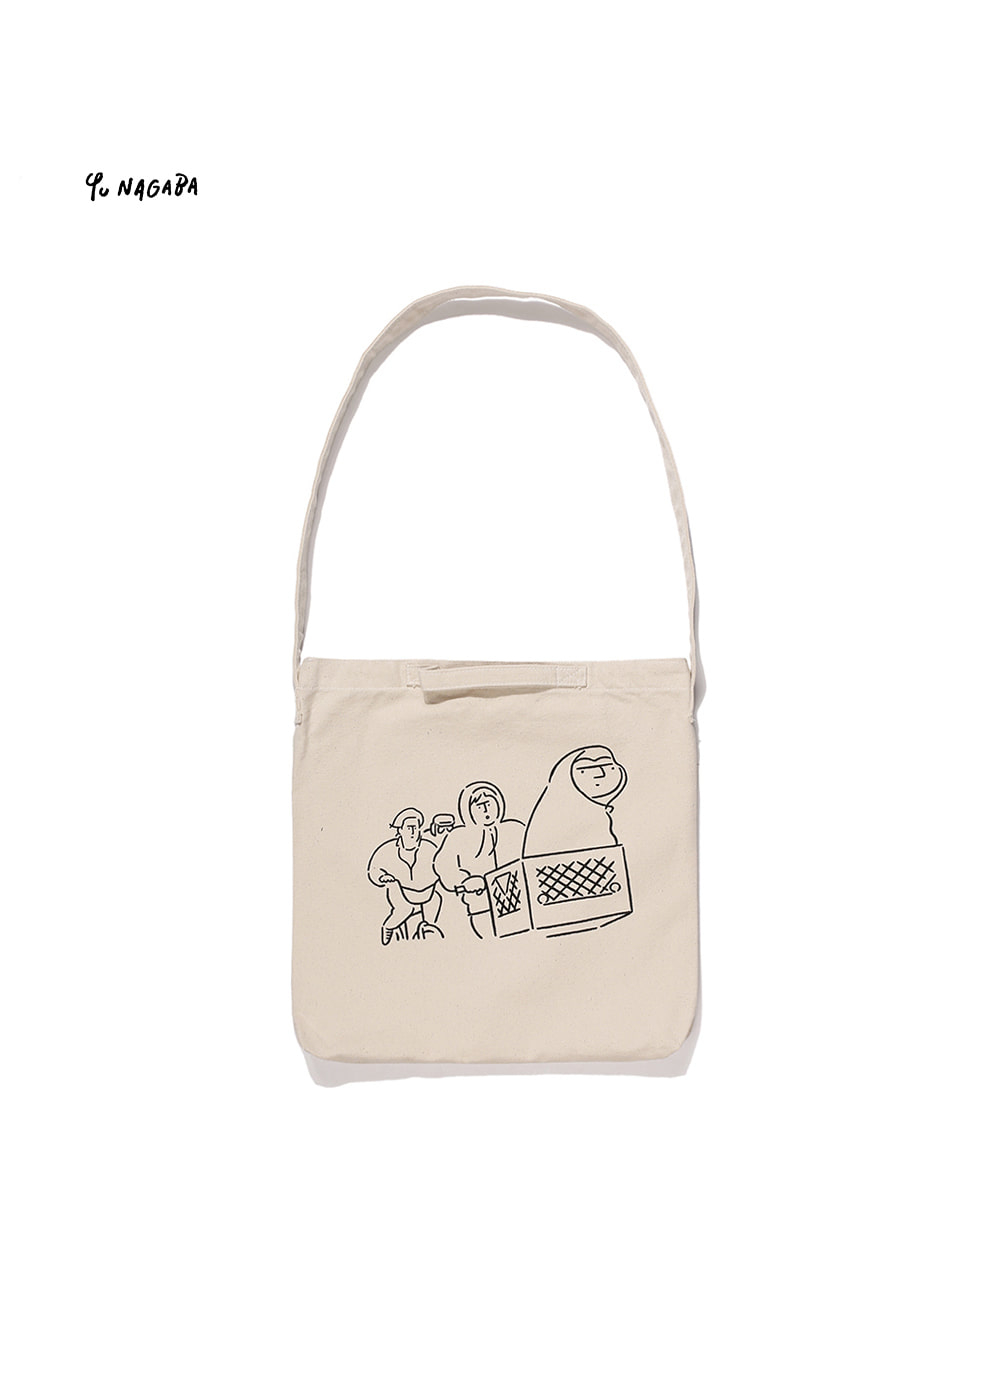 YU NAGABA - E.T TWO-WAY BAG neutral beige